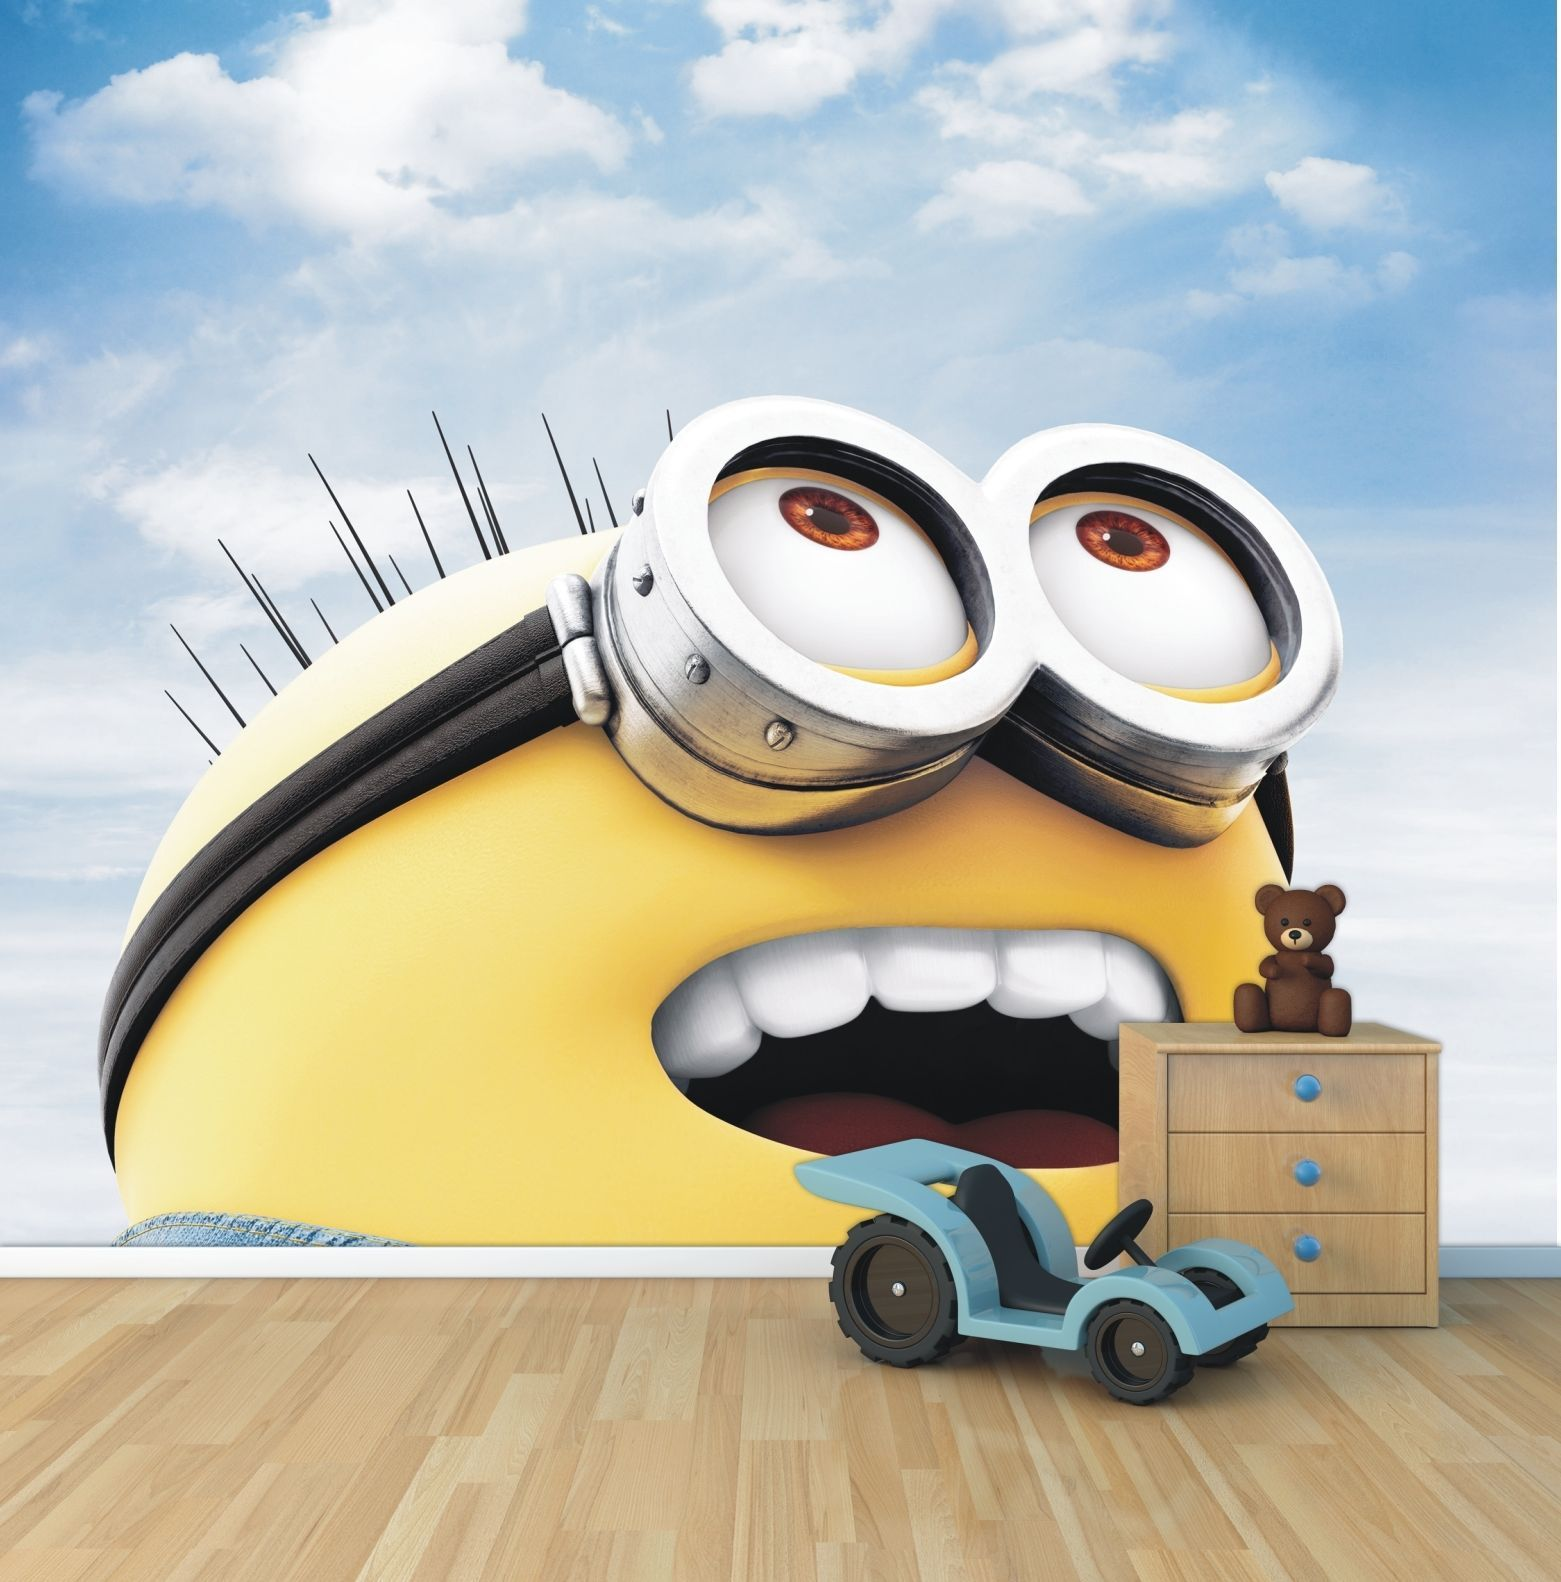 Minion Wallpaper For Bedroom Details About Minion Wallpaper Mural Style 1 Childrens Bedroom